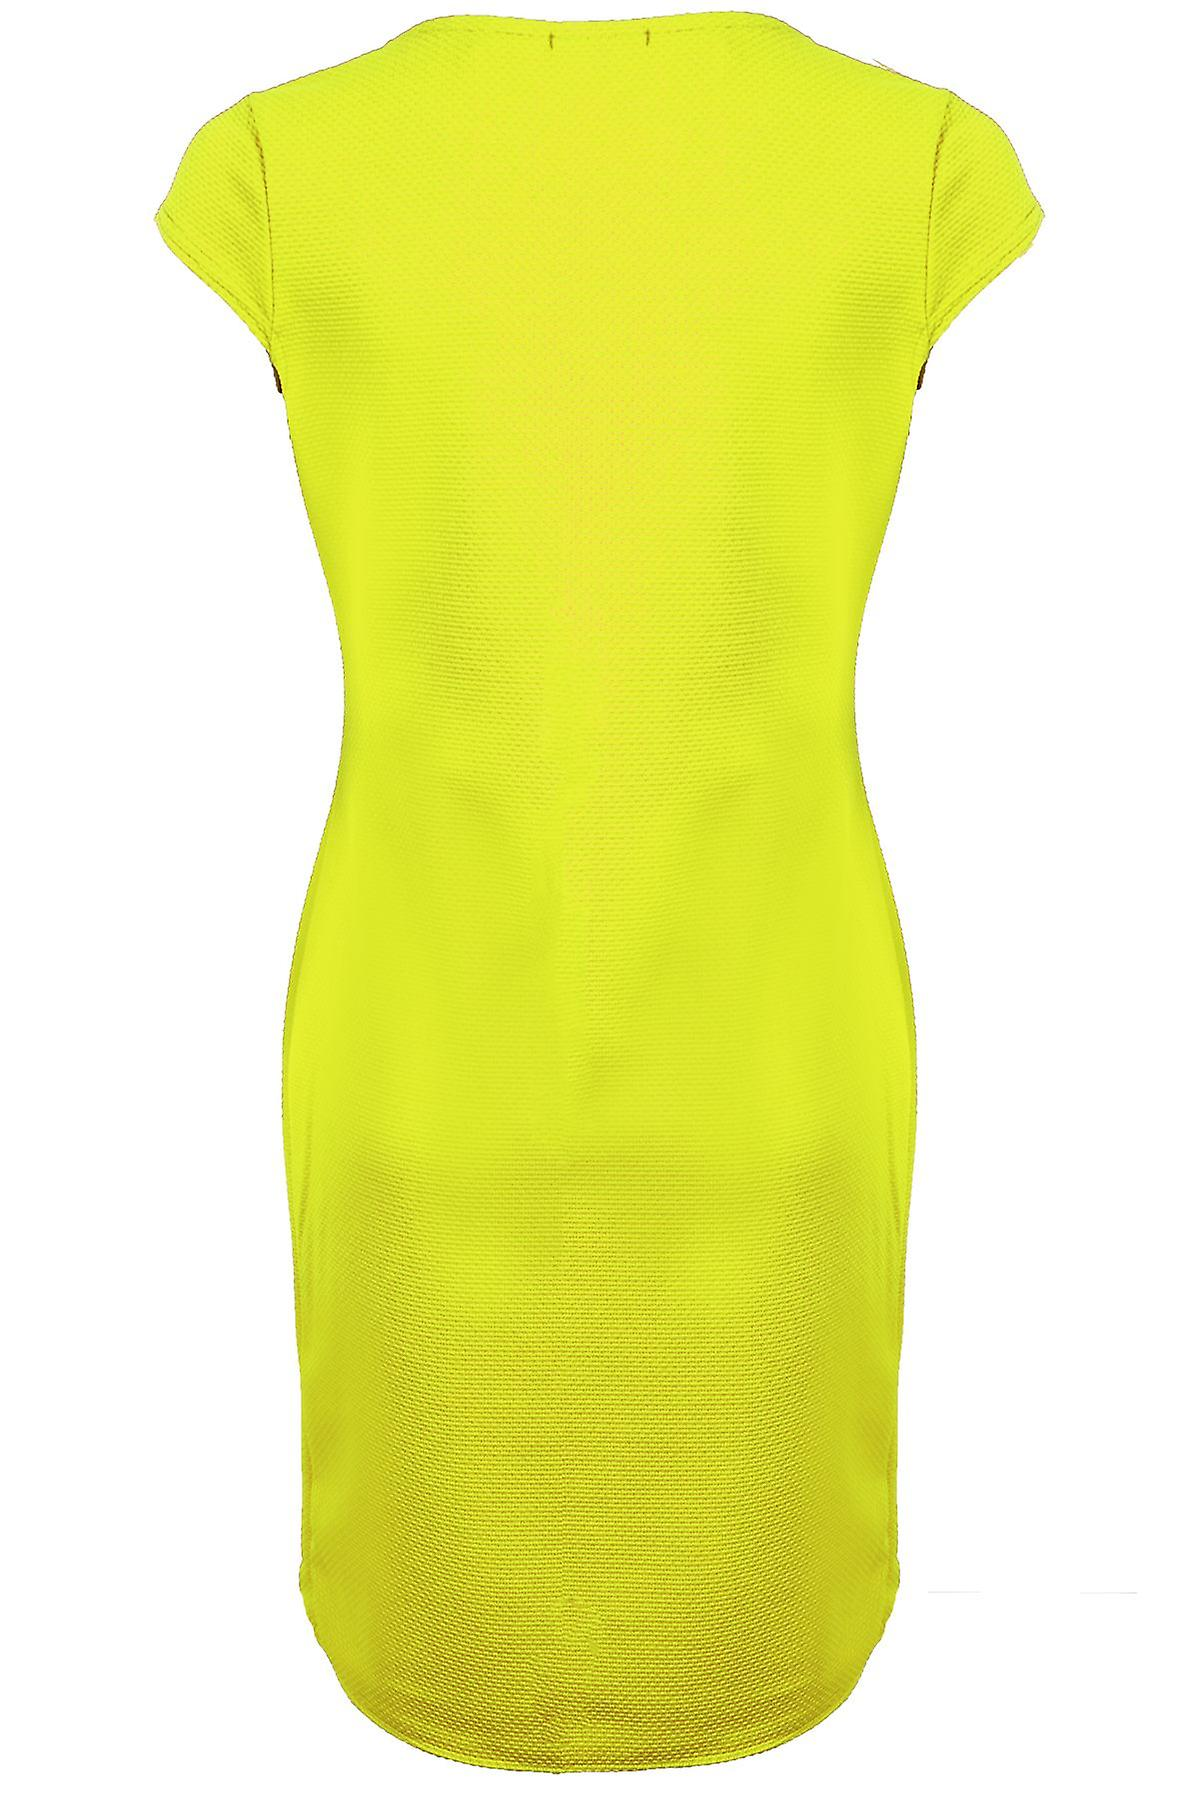 Ladies Cap Sleeve V Neck Wrap Gathered Textured Split Women's Bodycon Dress